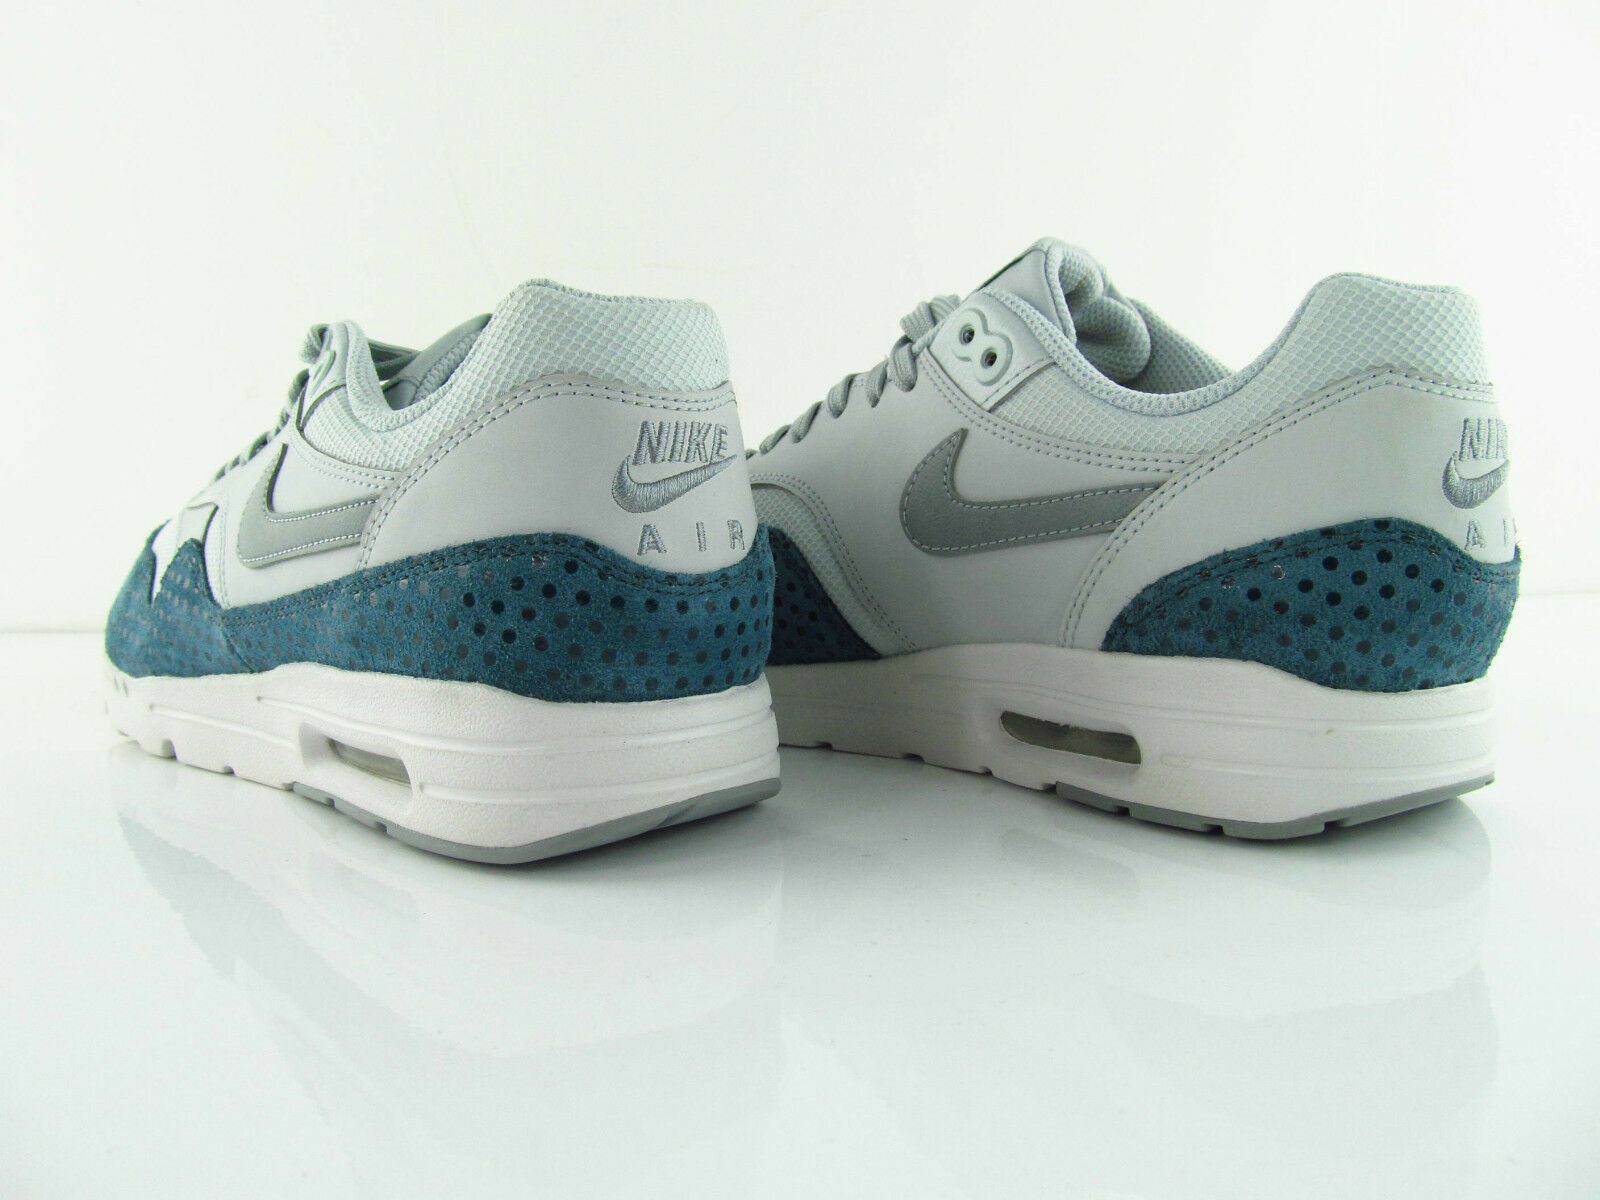 Nike Air Max 1 Emerald Ultra 90 Essentials Emerald 1 Grün New US_9.5 Eur 41 1c7e11